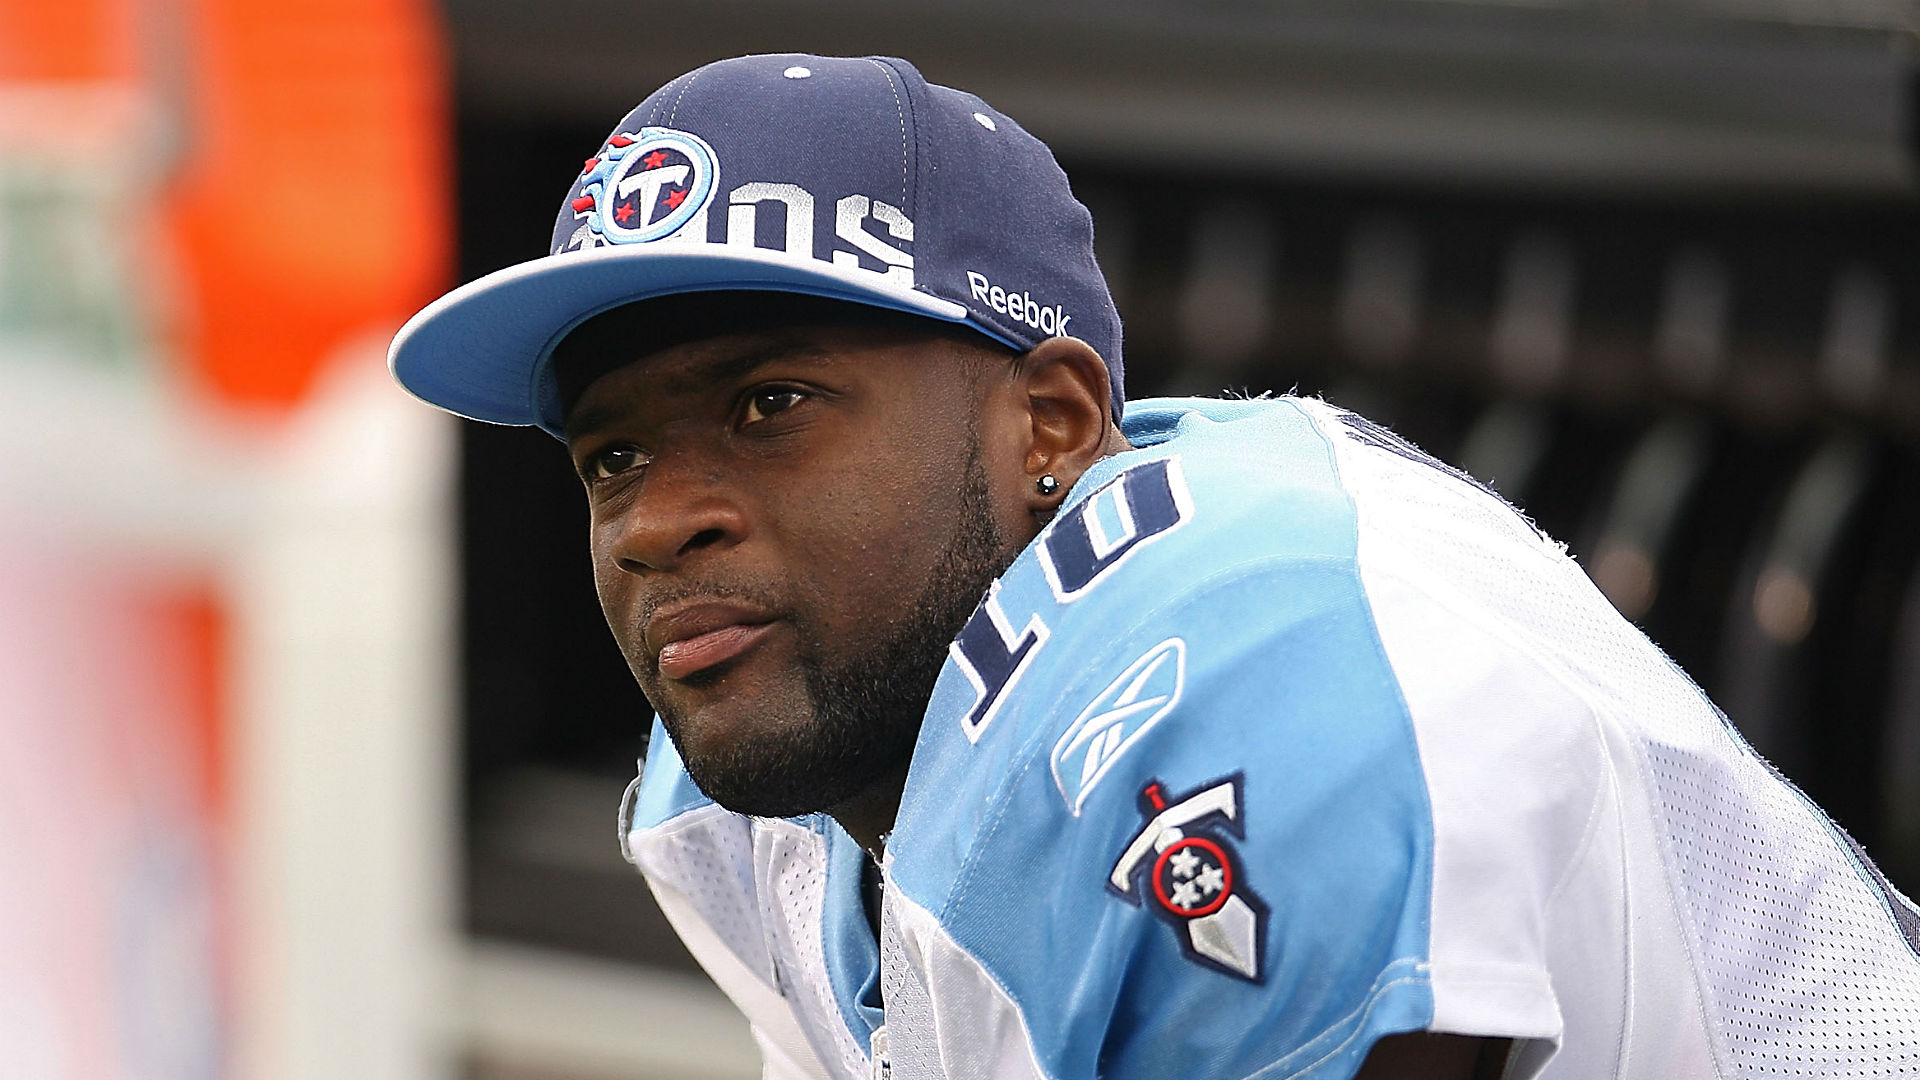 Vince Young hires agent, attempting comeback